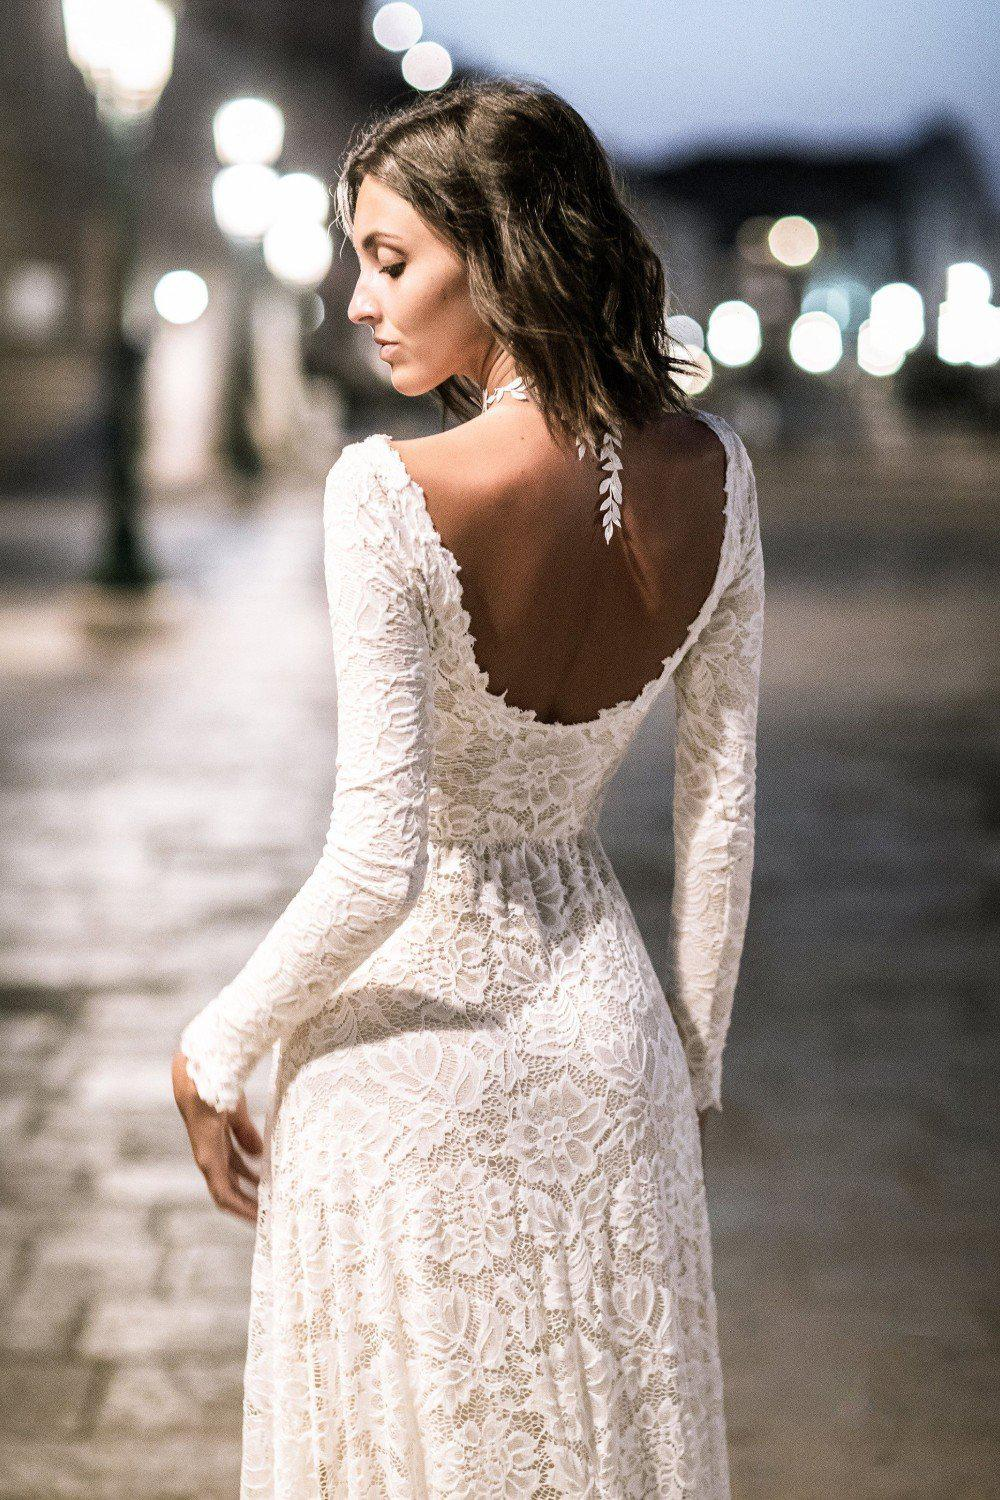 Full Lace Sheath Wedding Dress with Low-Back Design - Mr. & Mrs. Tomorrow